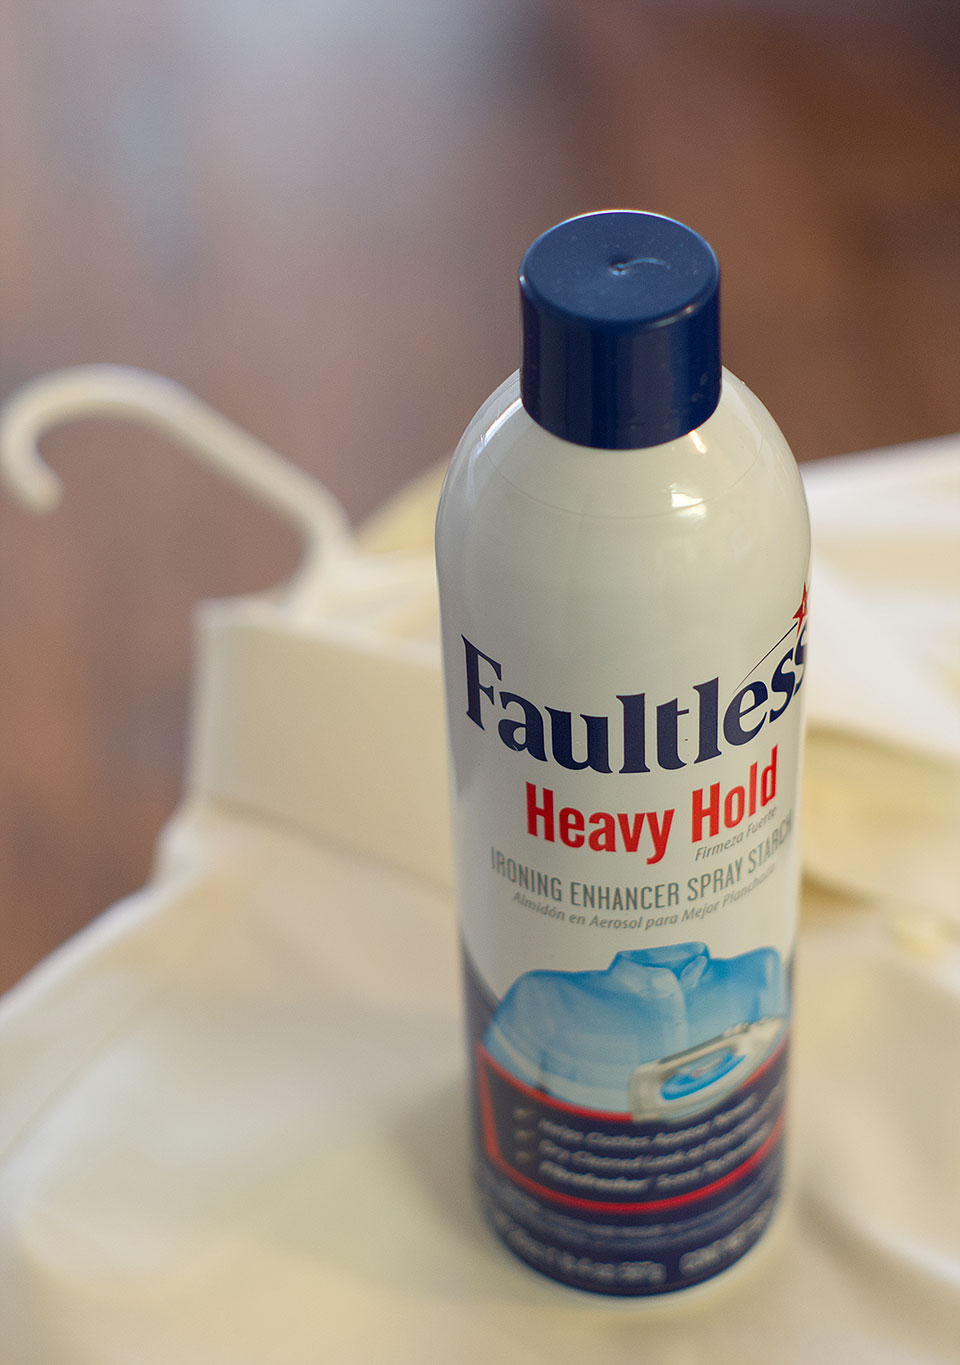 Faultless Heavy Hold Spray Starch Review